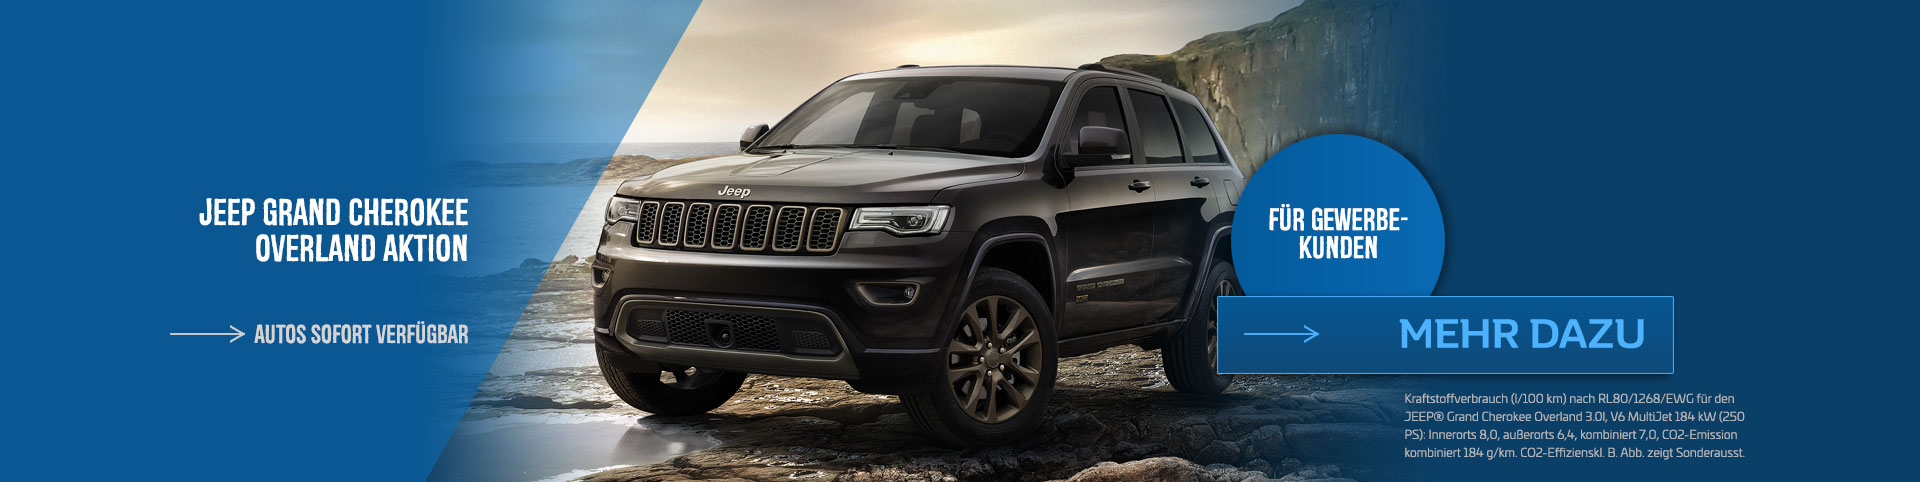 JEEP GRAND CHEROKEE AKTION LEASING